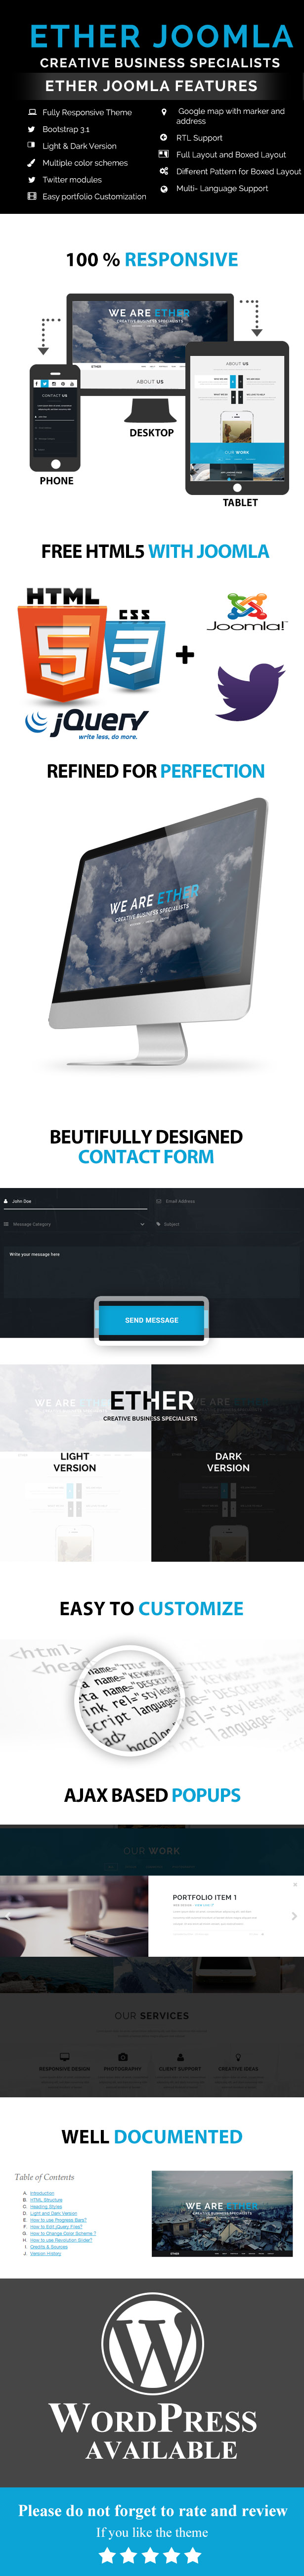 Ether - One Page Multipurpose Joomla Template